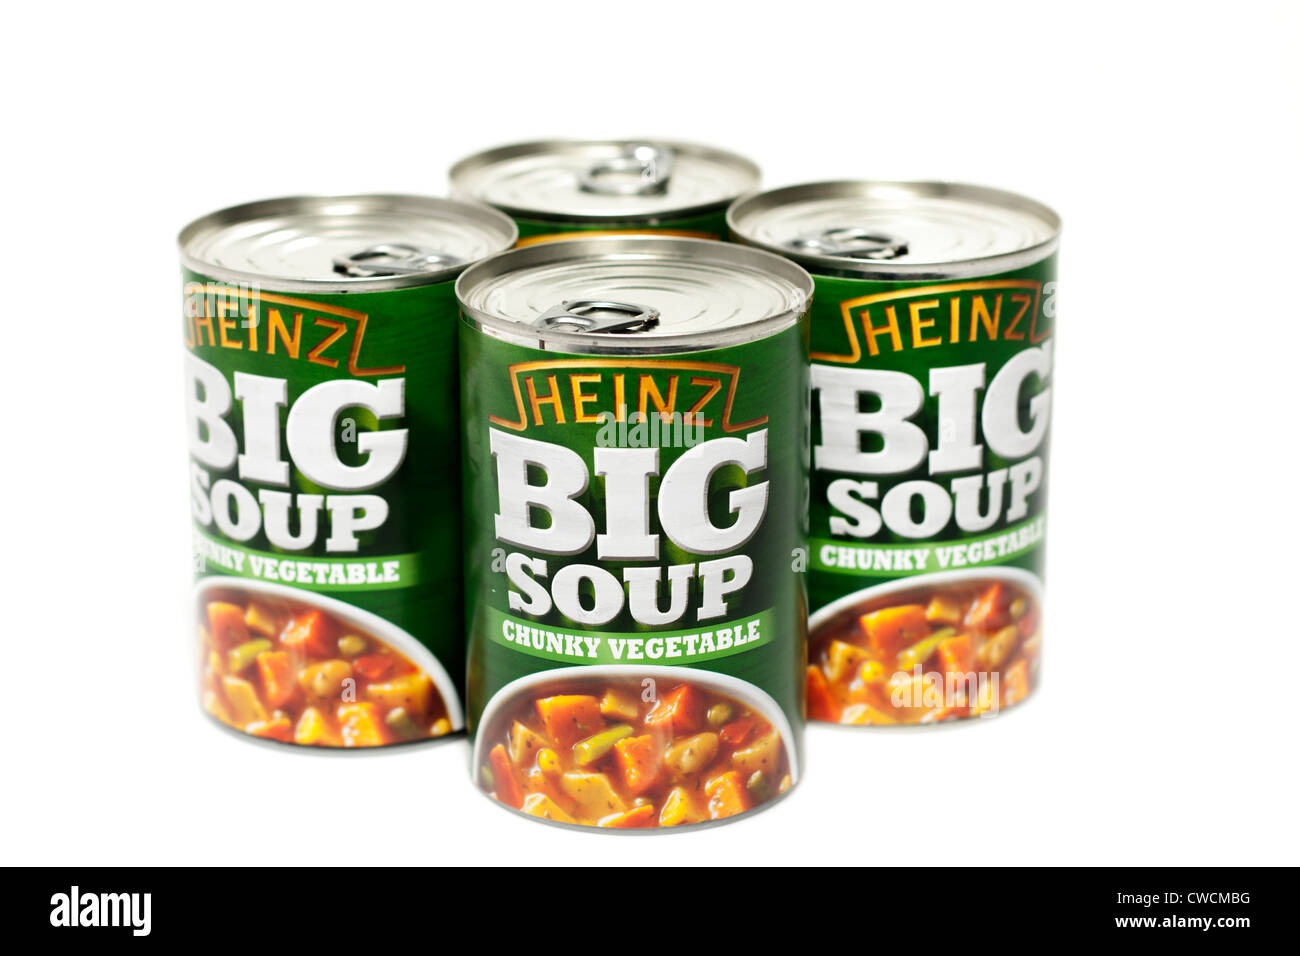 Four cans of Heinz Big Soup - Stock Image